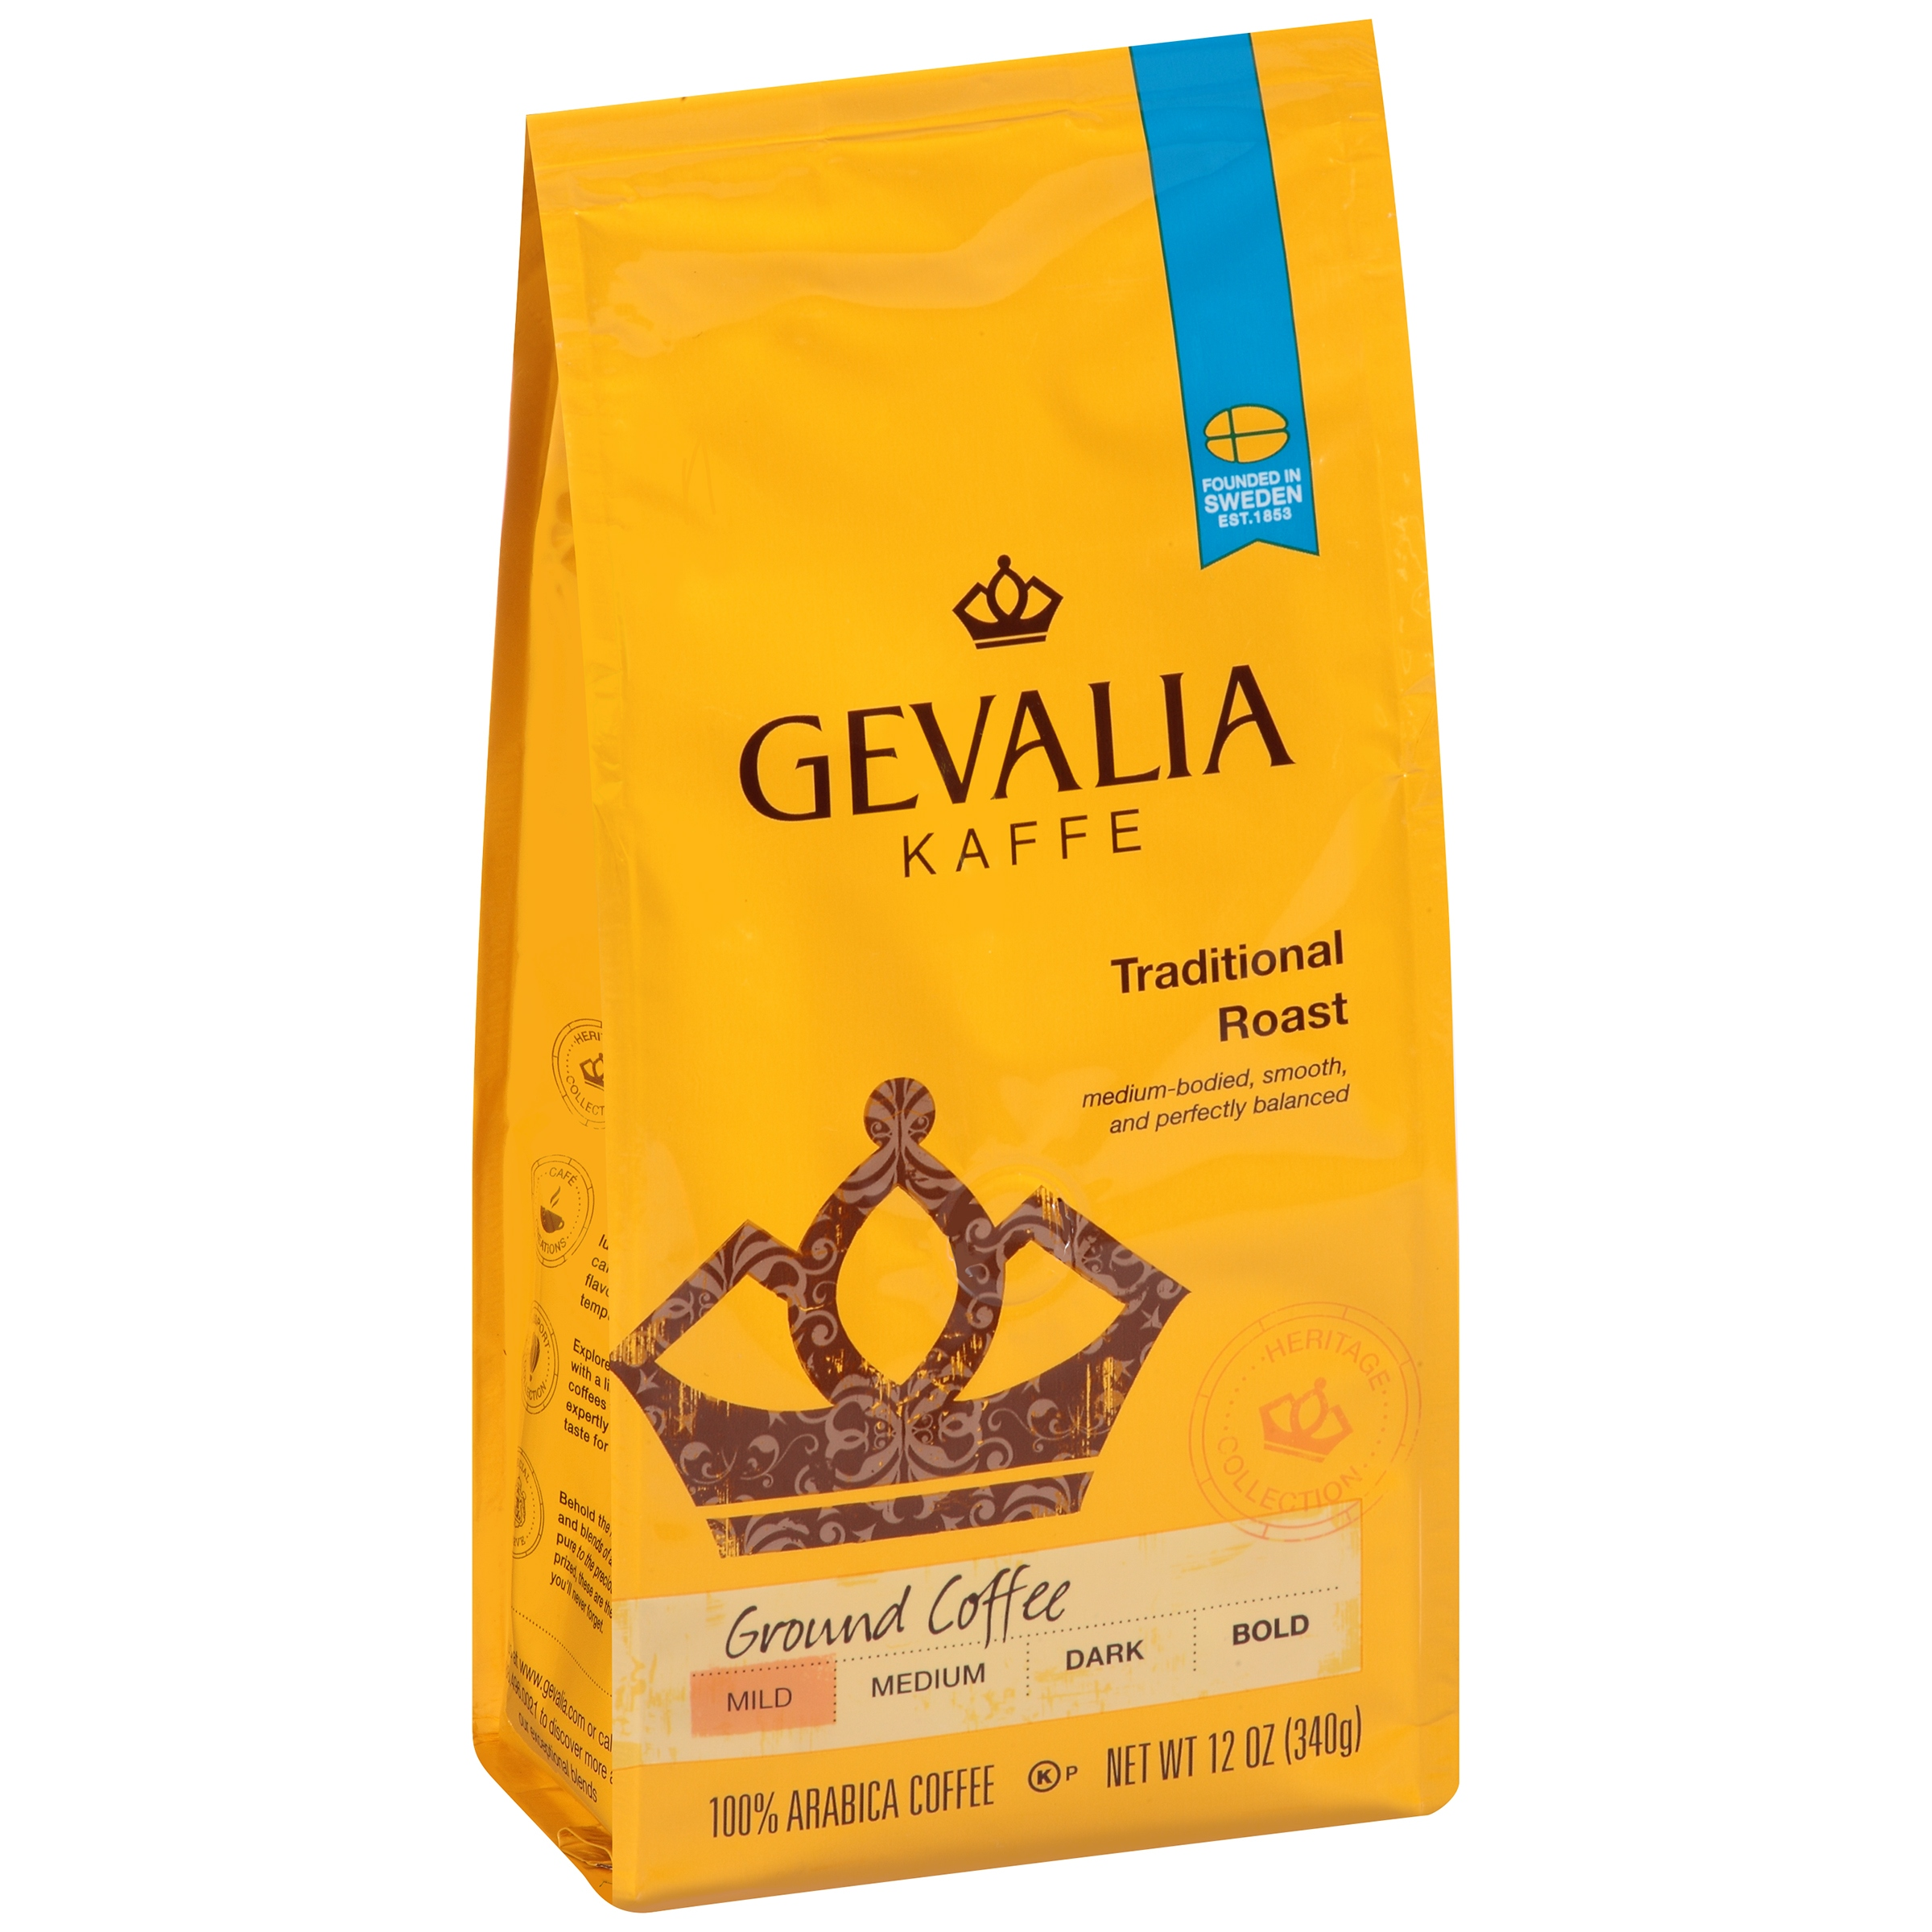 Gevalia Kaffe Traditional Mild Roast Ground Coffee, 12 OZ (340g)